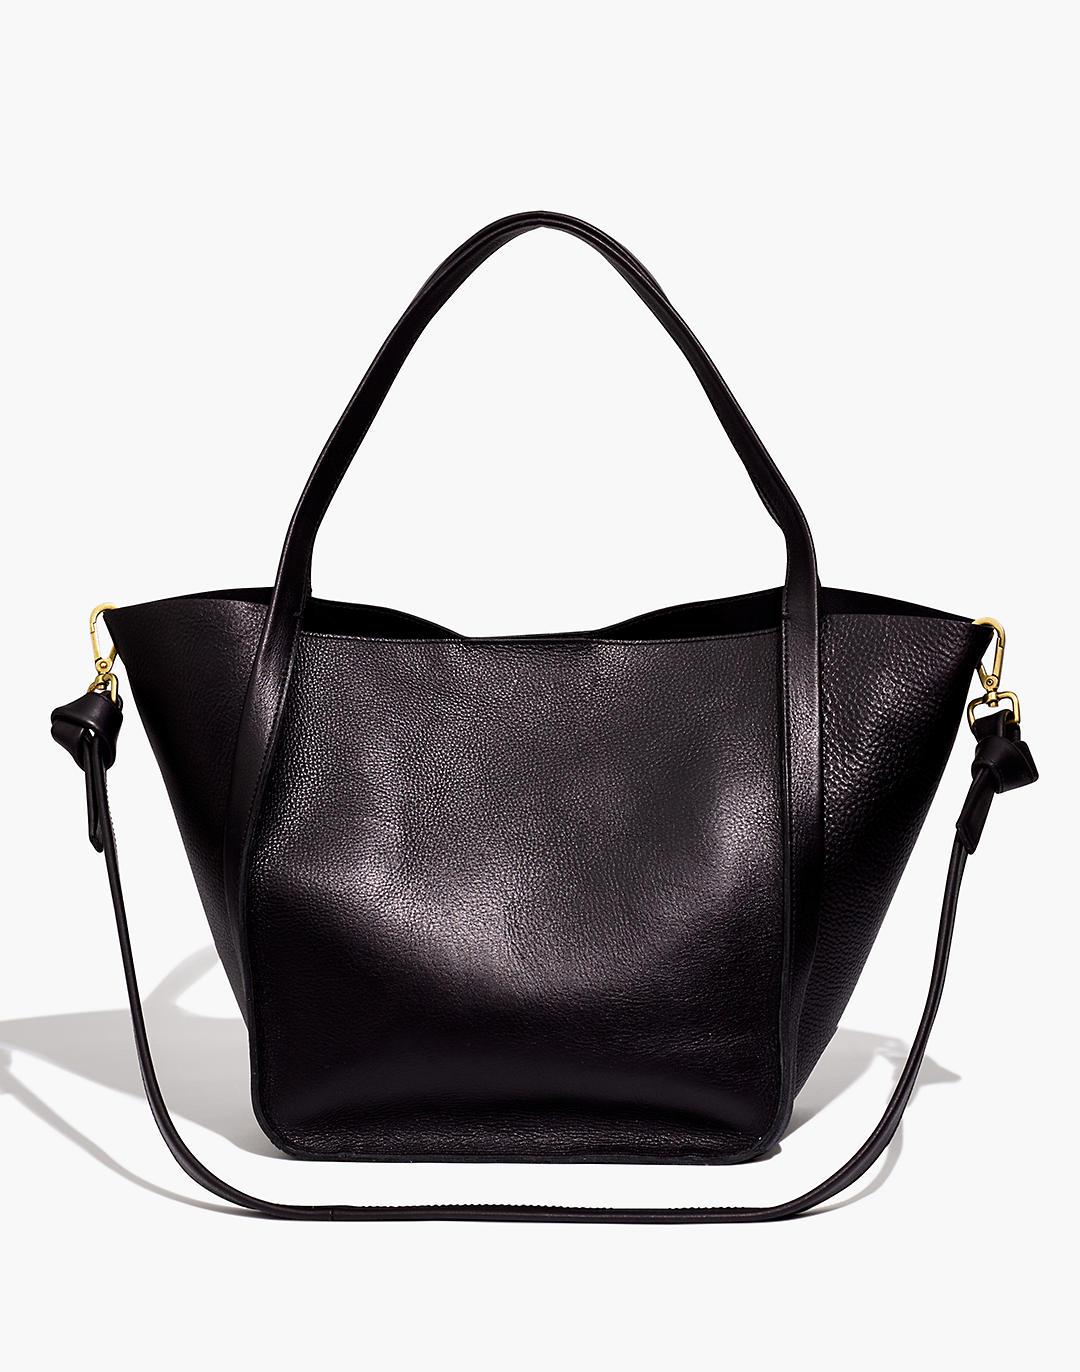 The Sydney Tote